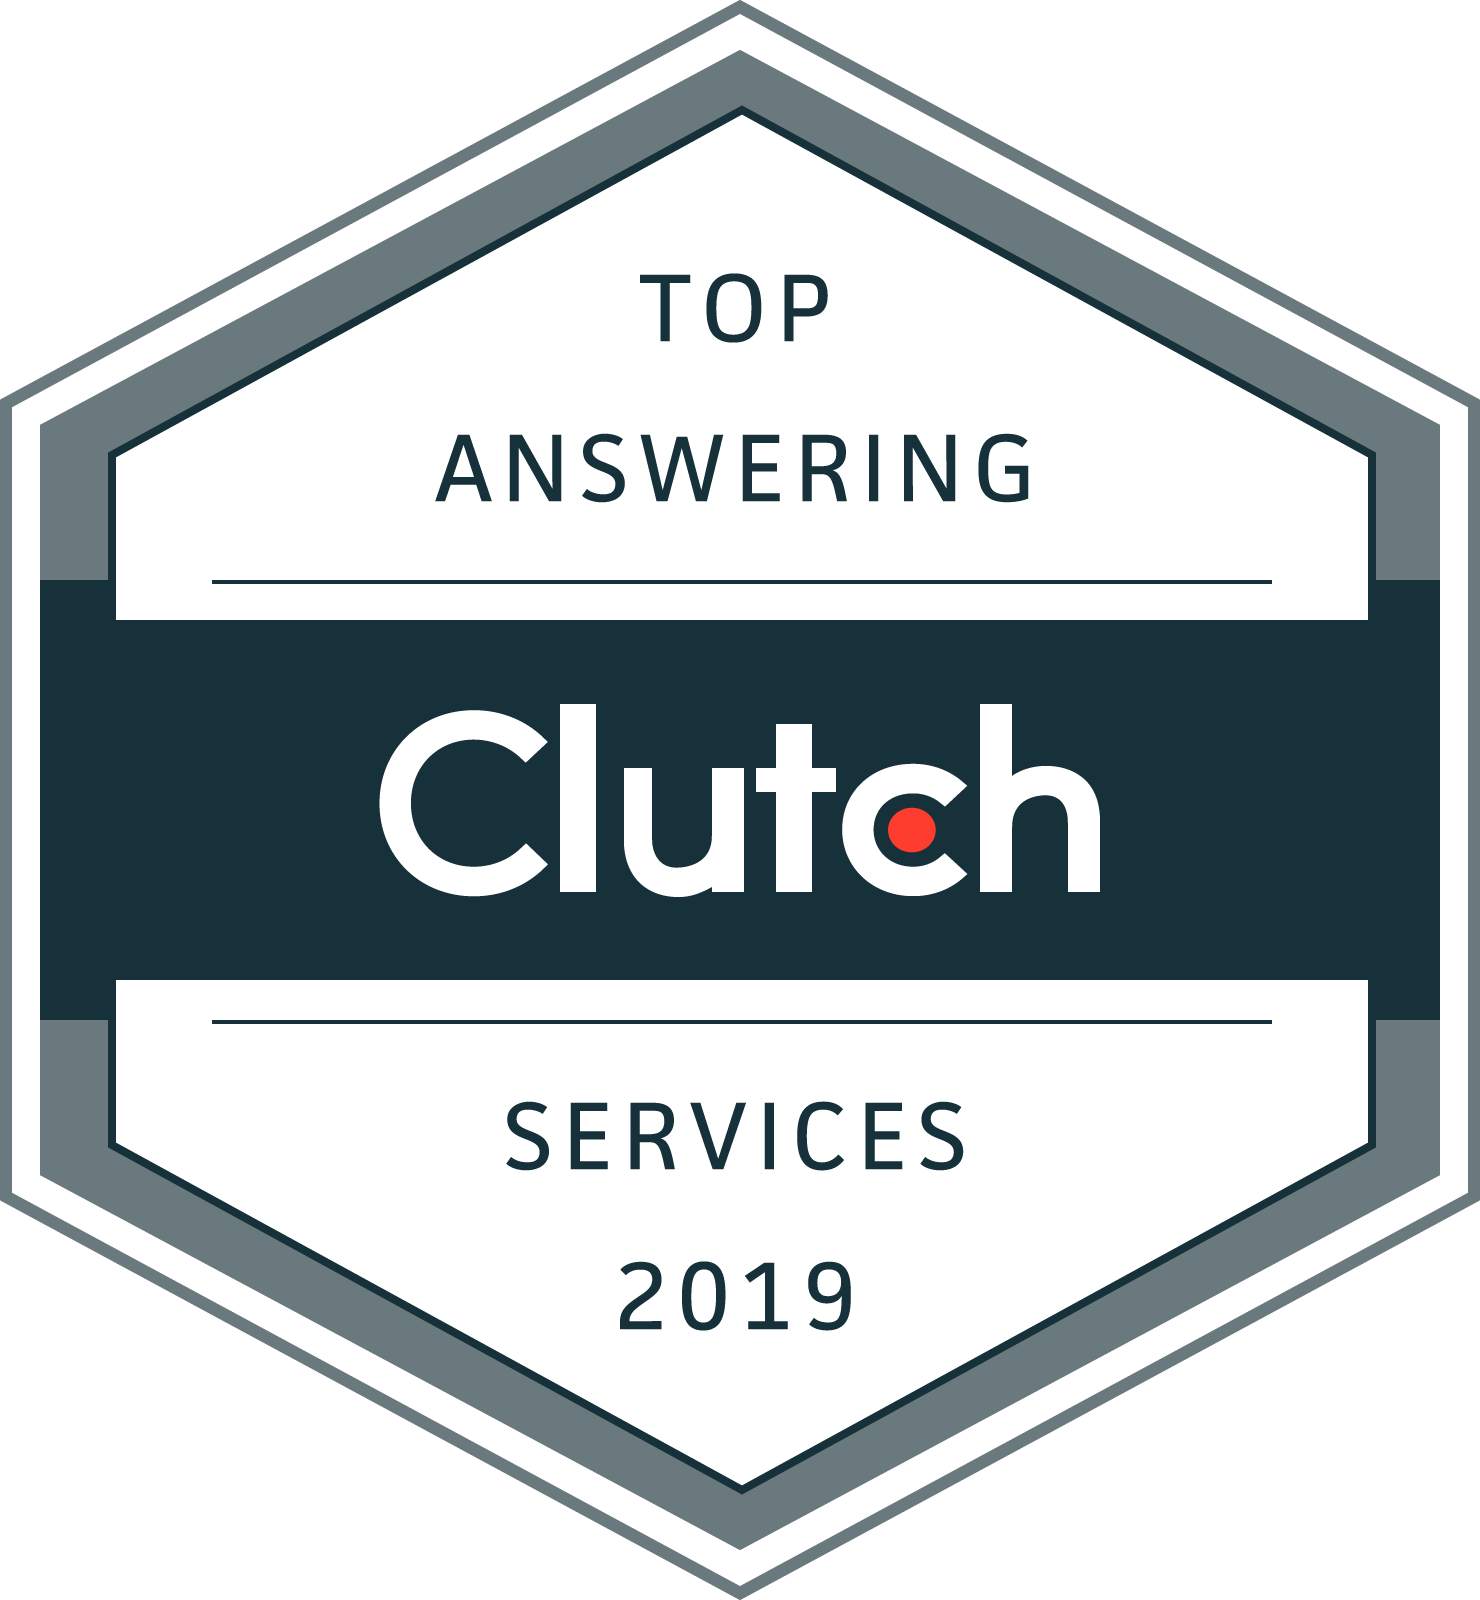 Clutch top virtual receptionist services 2019